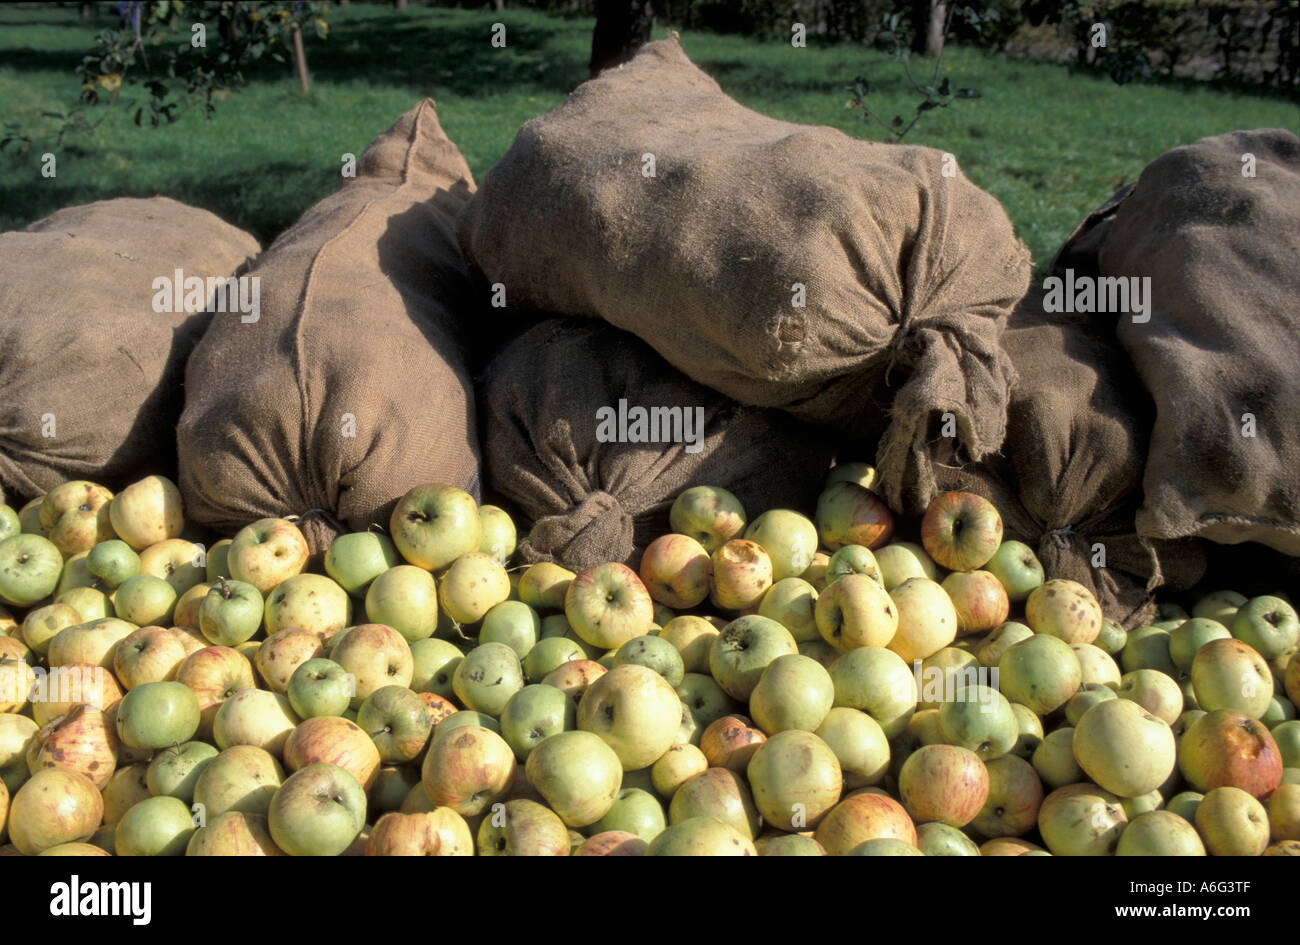 Apple harvesting, yellow apples (windfall) and sacks full of apples in orchard near Schorndorf, Rems-Murr district / county - Stock Image